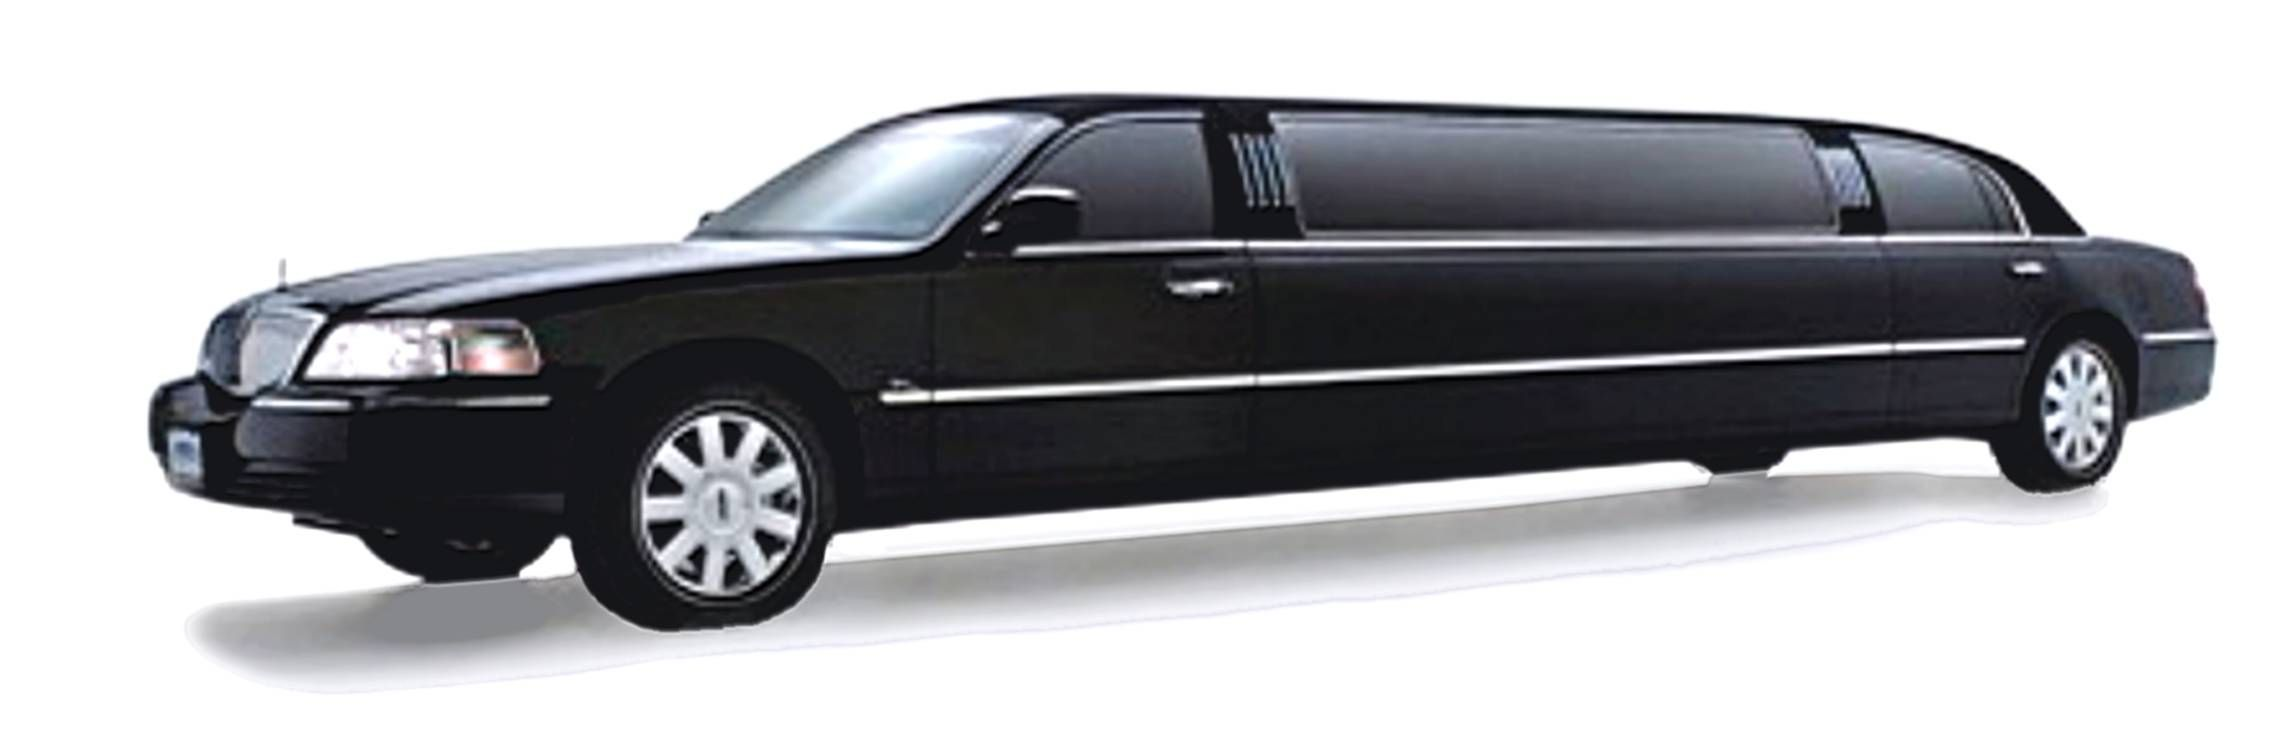 Stretch limo clipart 8 » Clipart Portal.